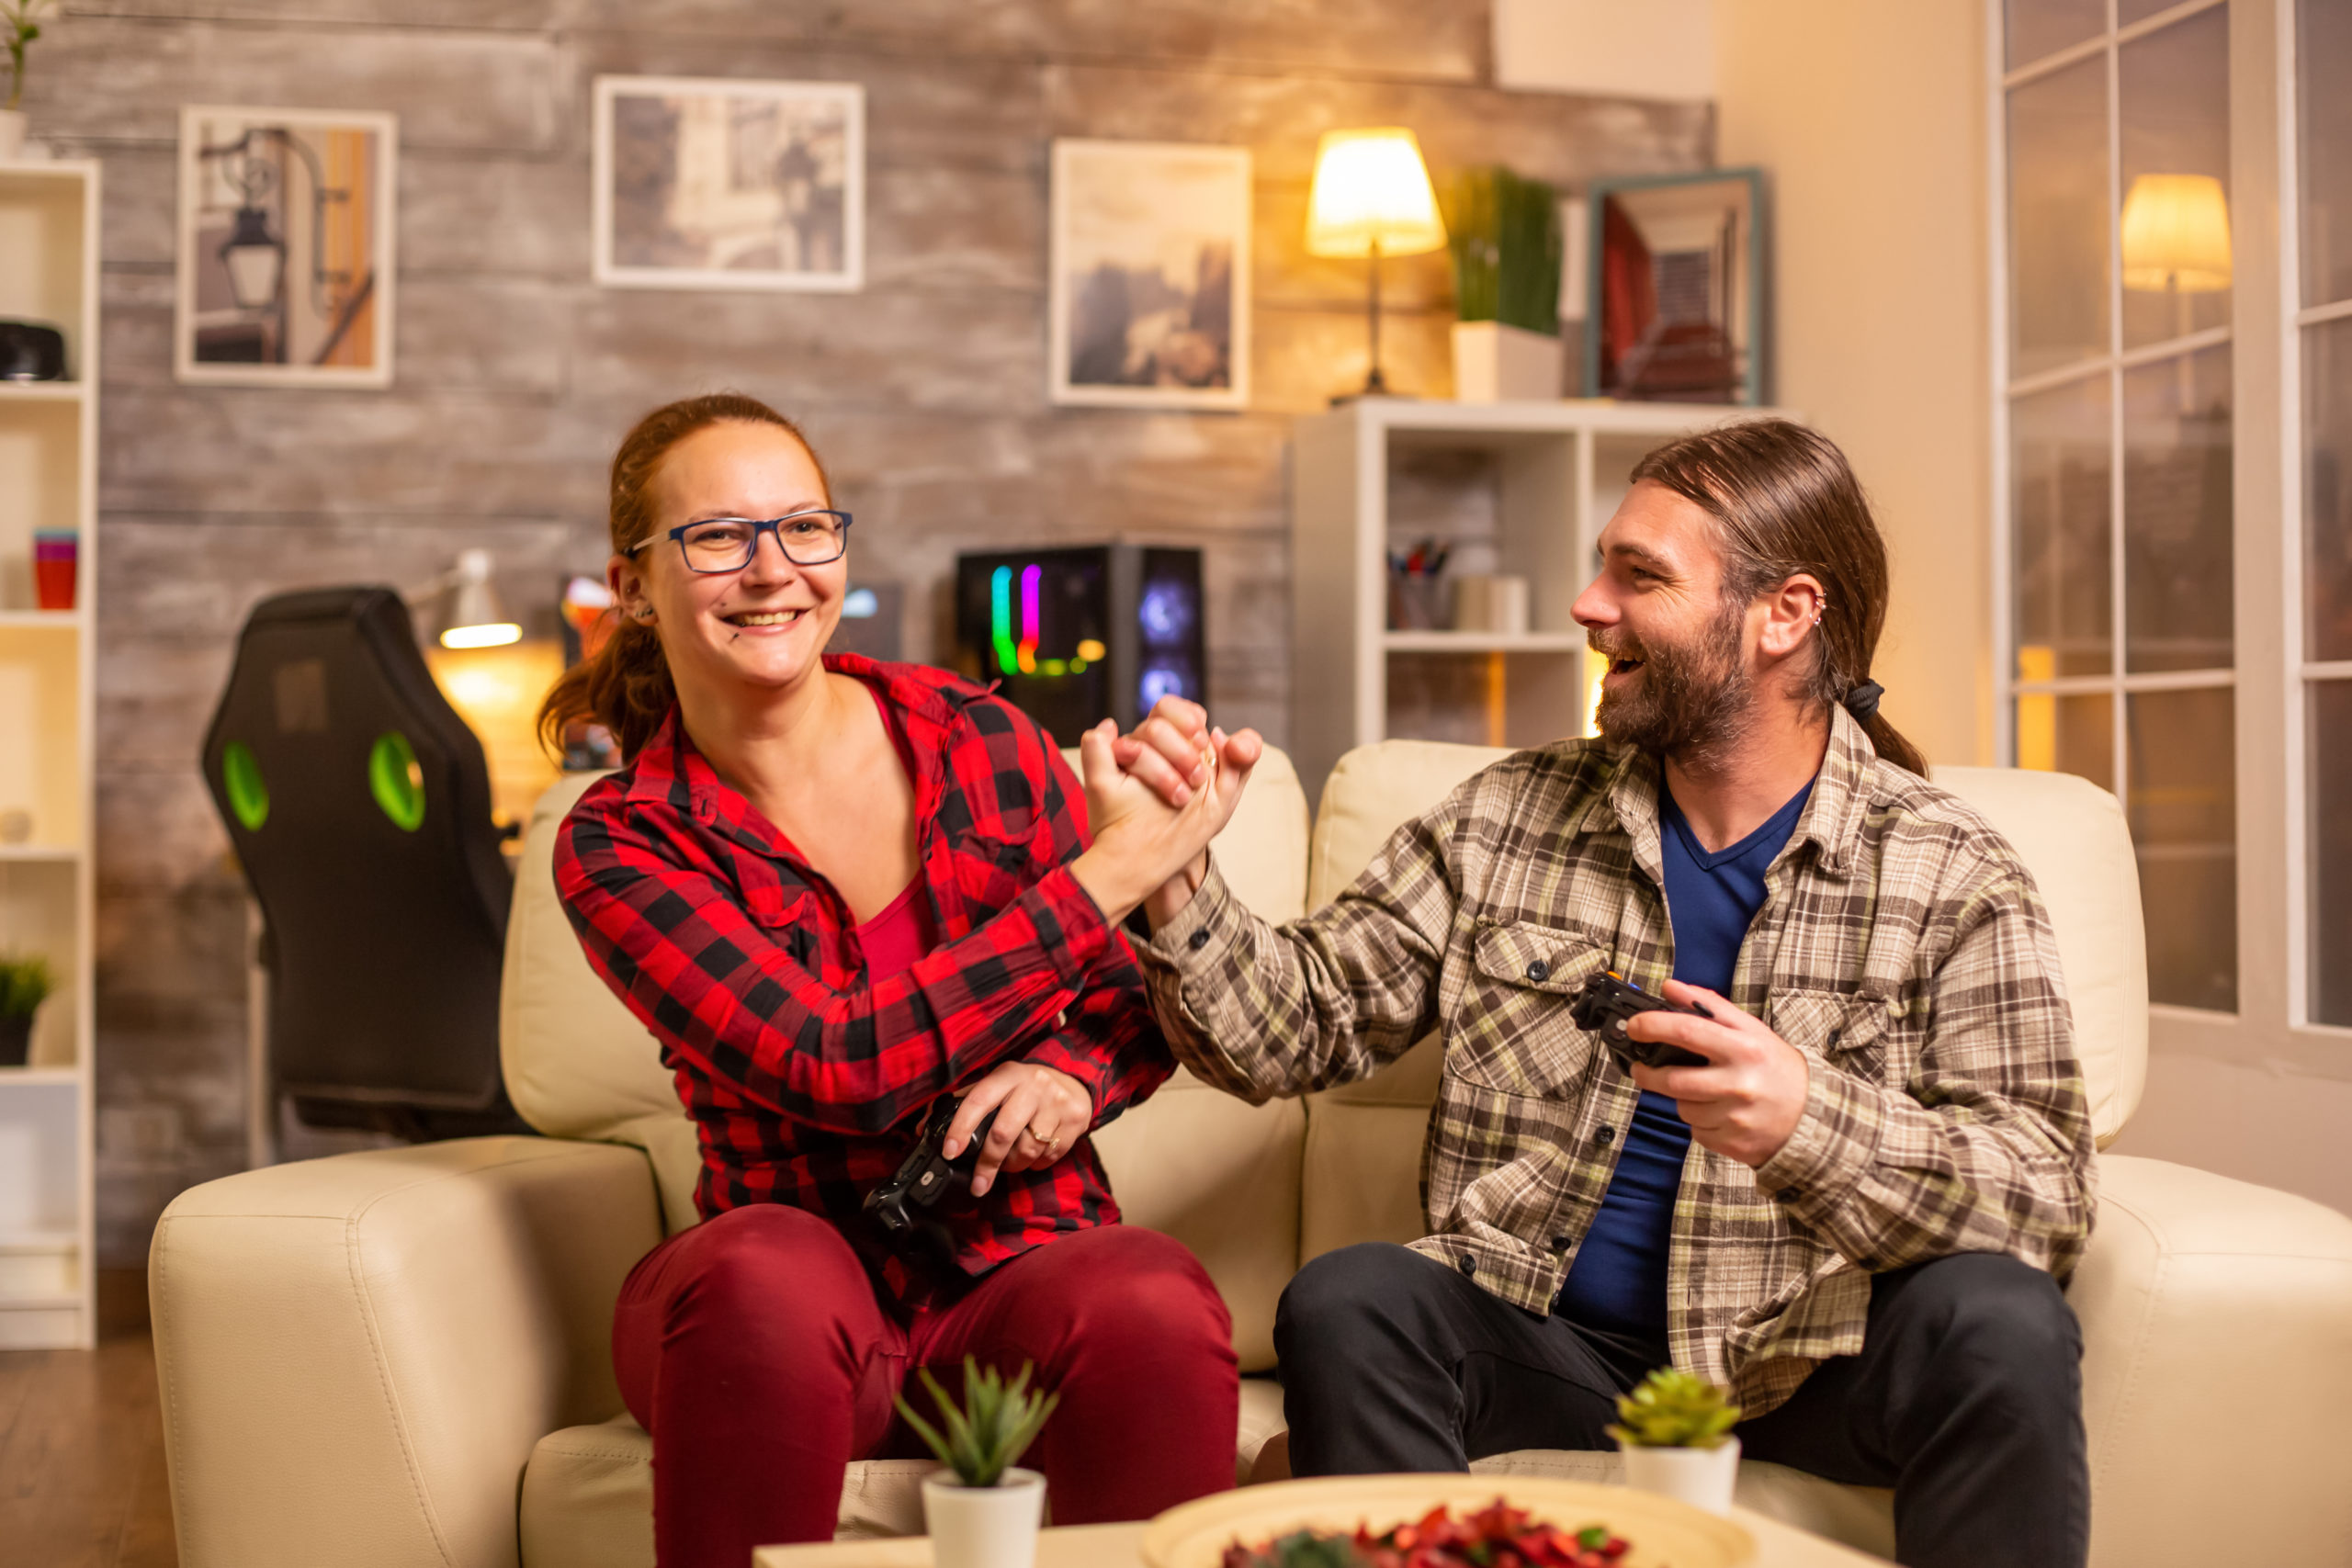 https://elements.envato.com/gamers-couple-playing-video-games-on-the-tv-with-XYDDYAQ